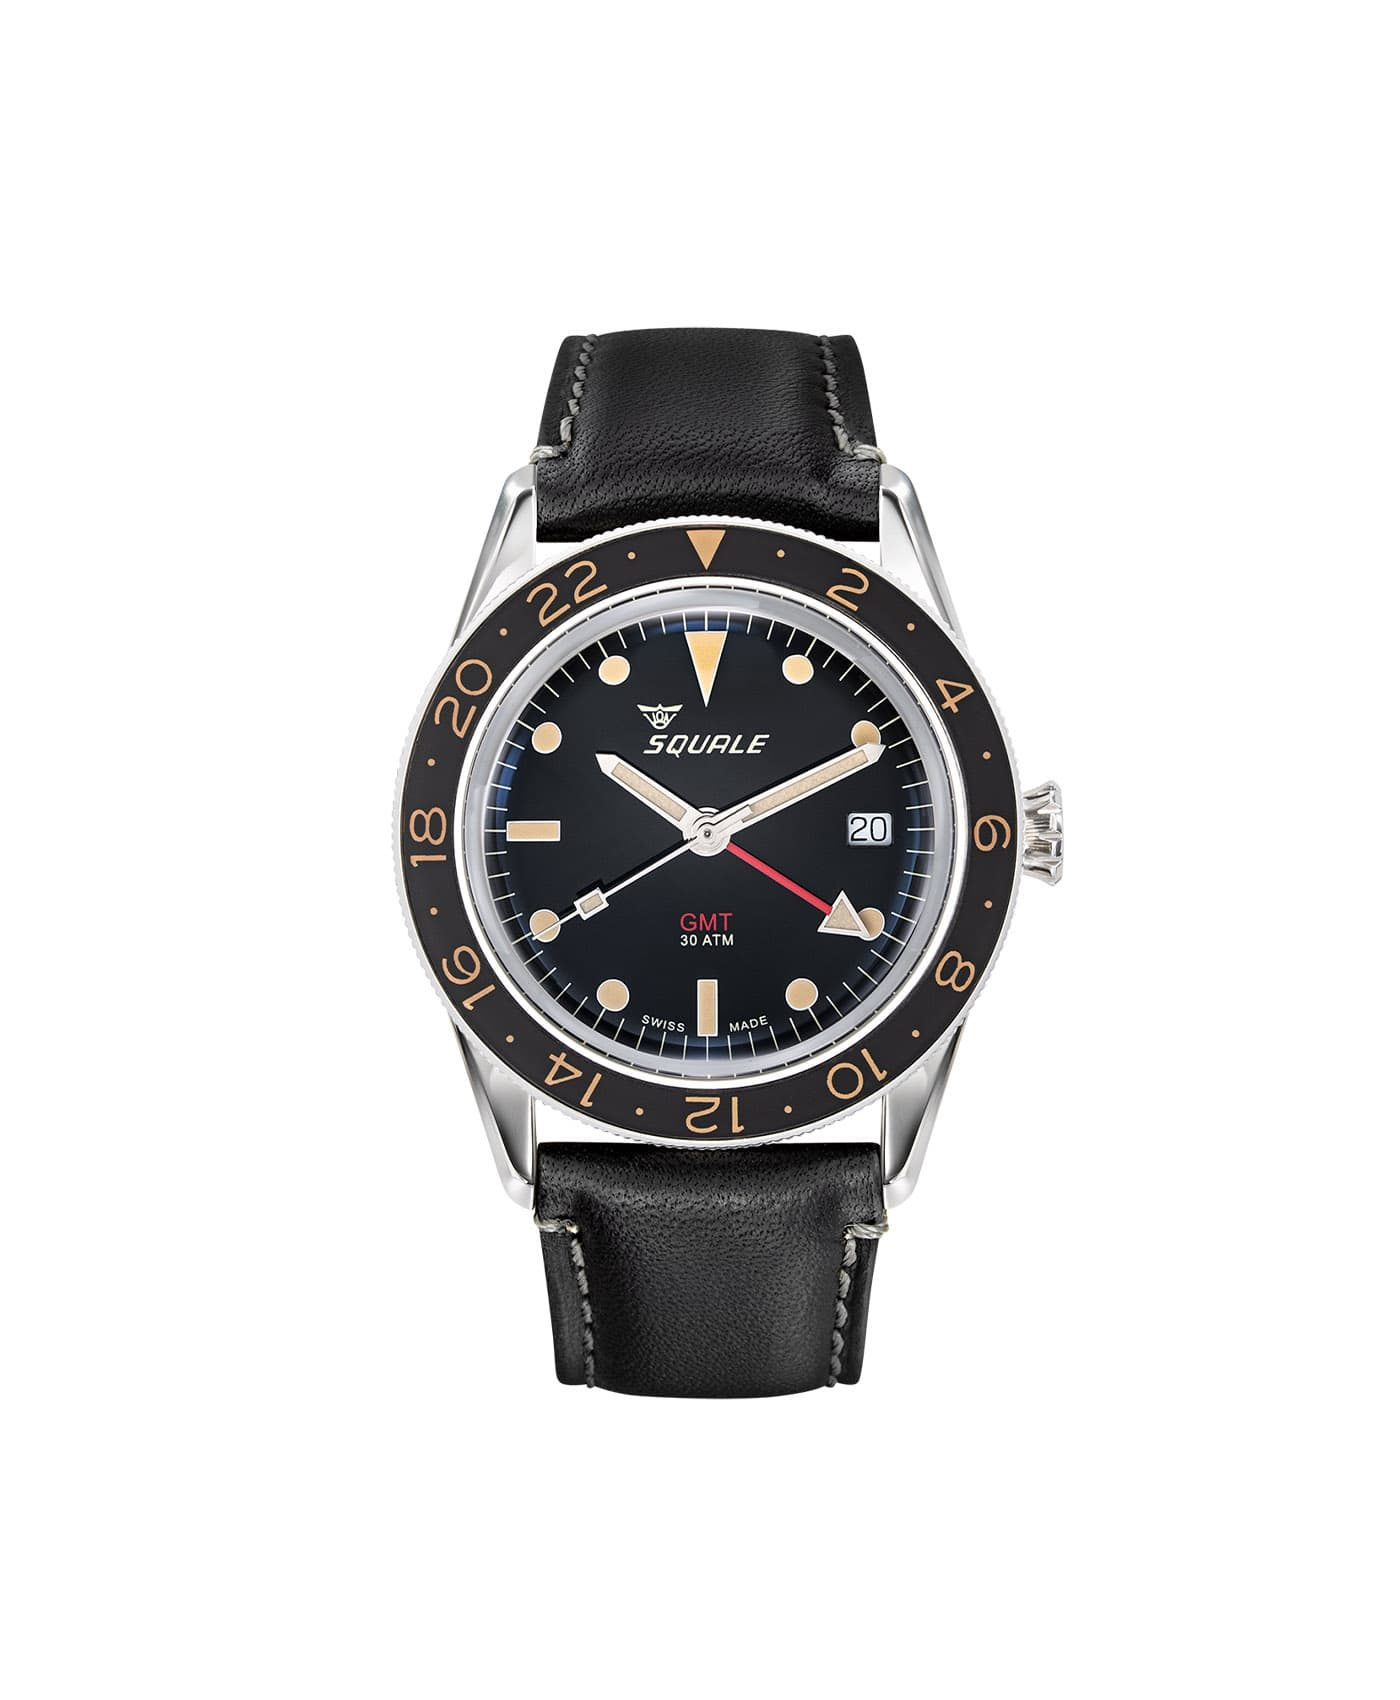 Squale SUB-39 GMT black dial front